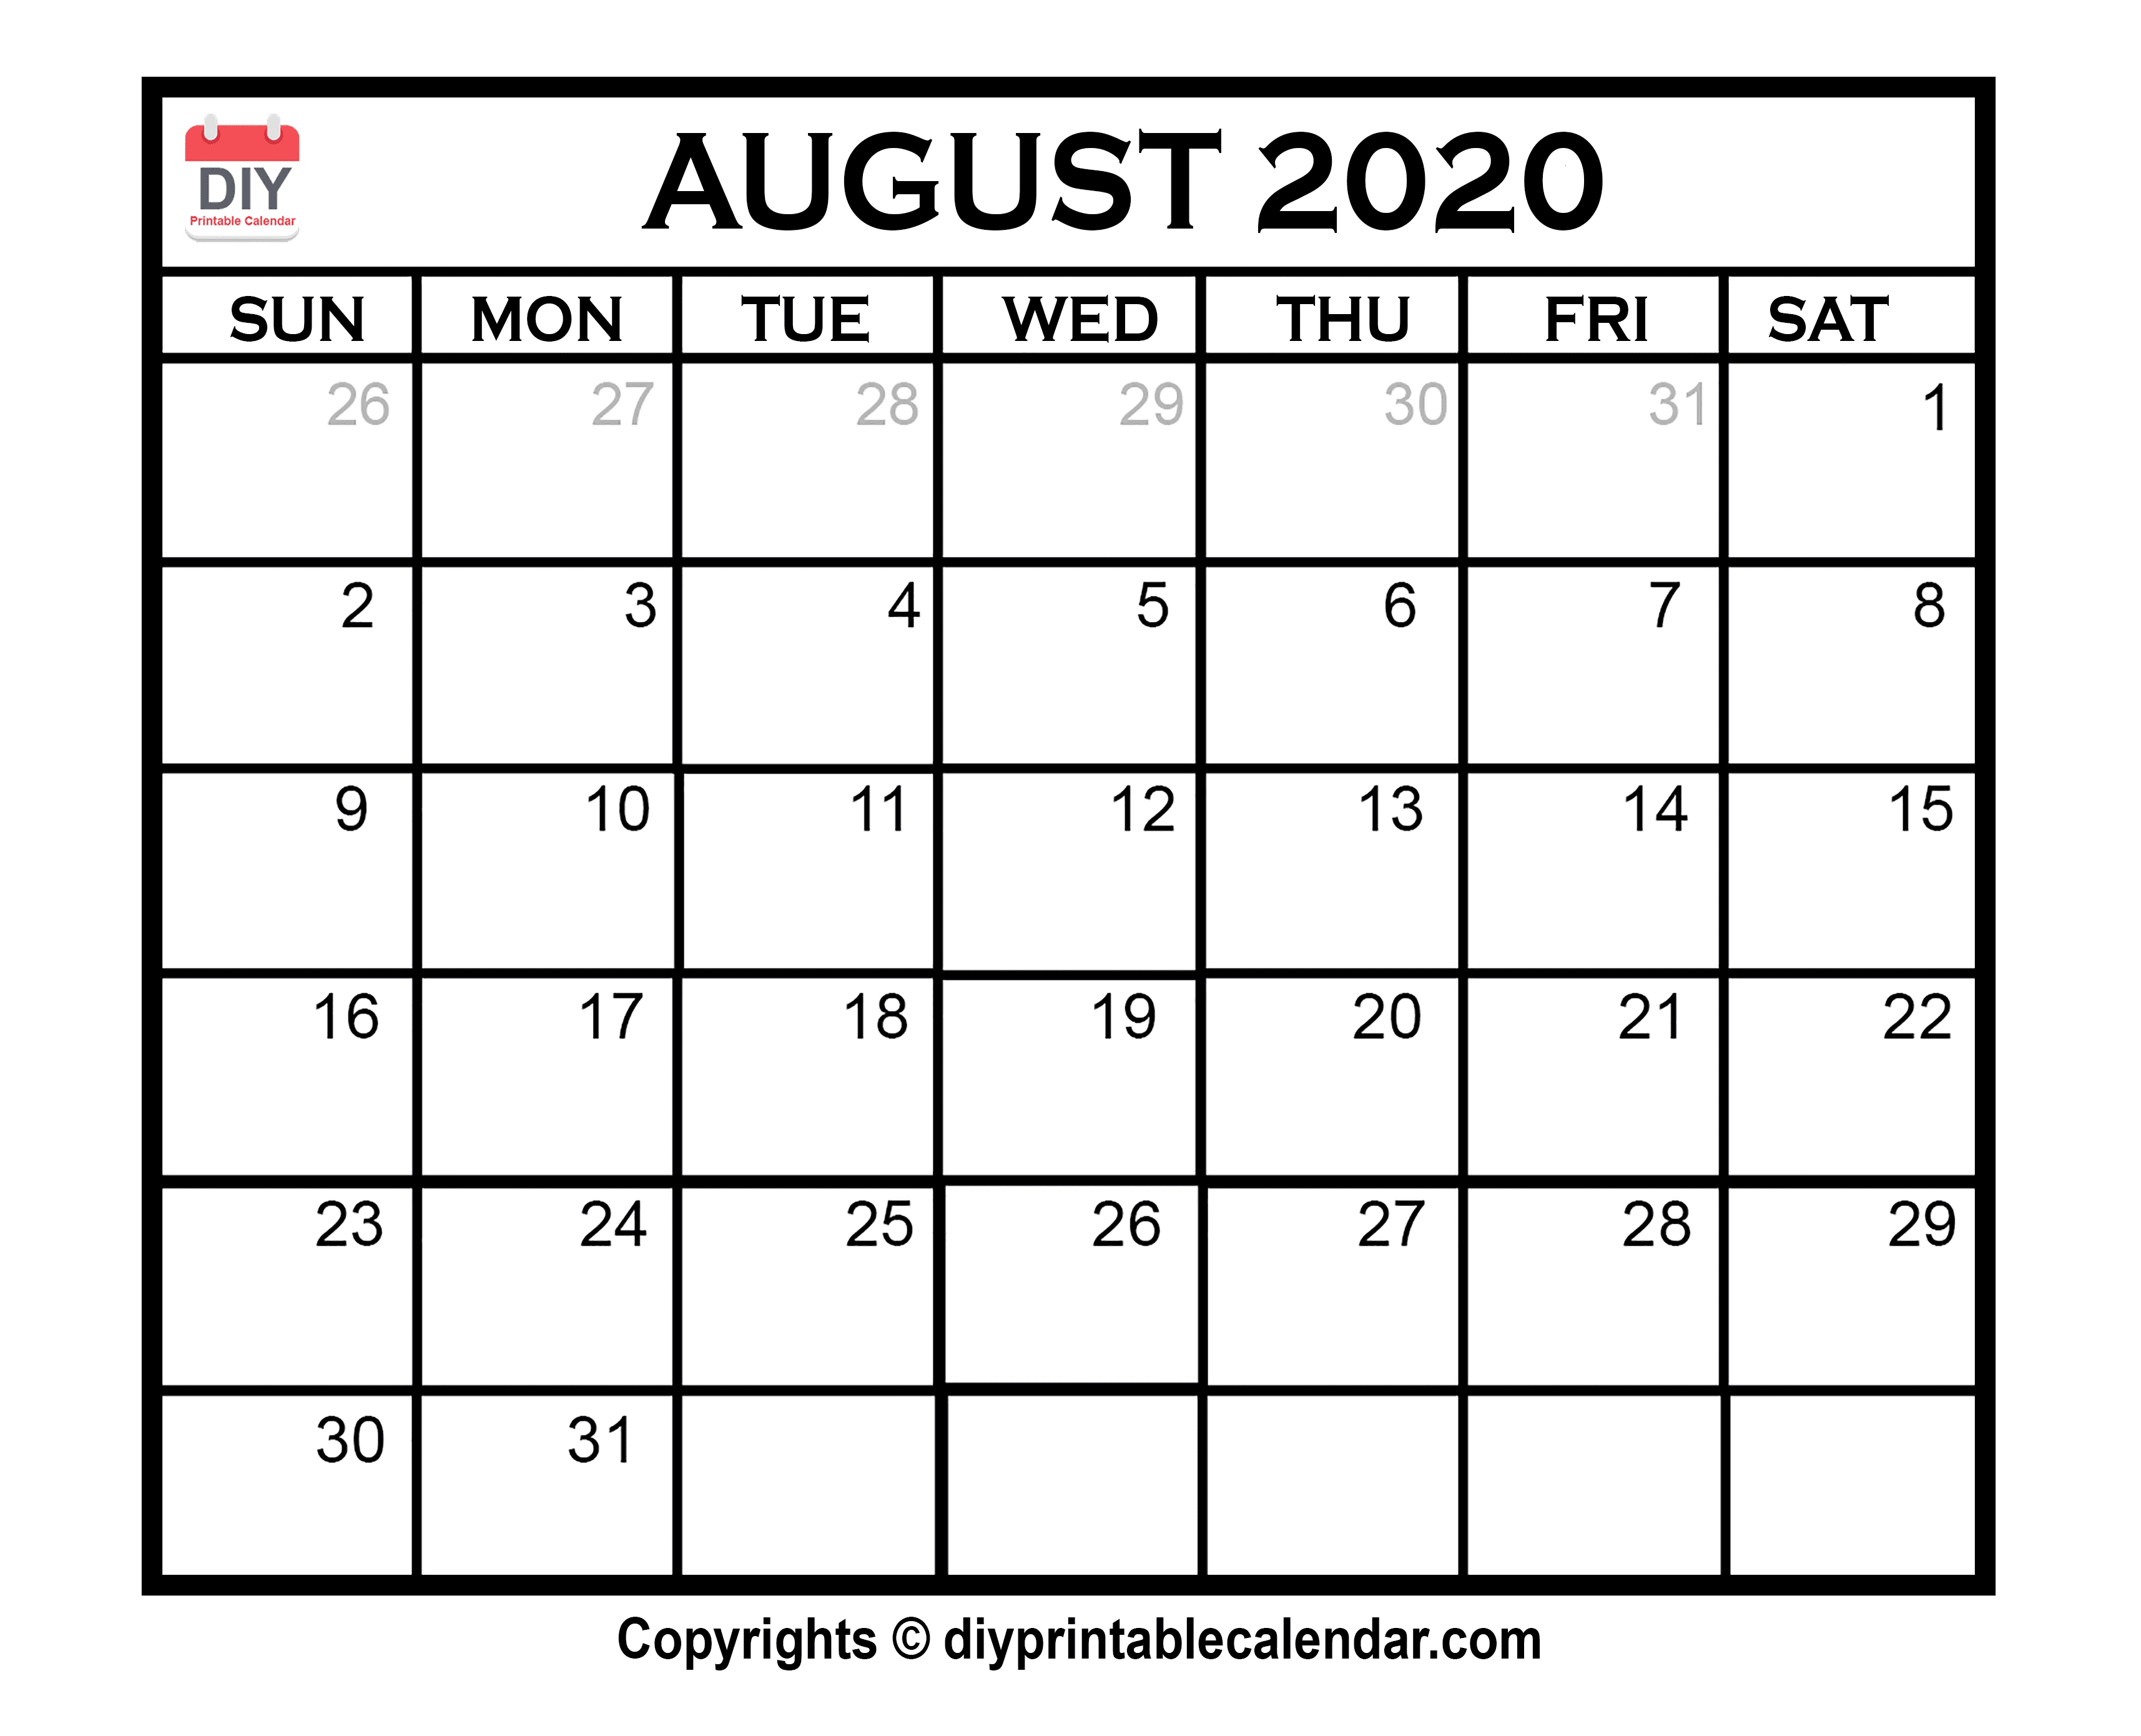 August 2020 Printable Calendar Template regarding May June July August 2020 Calendar